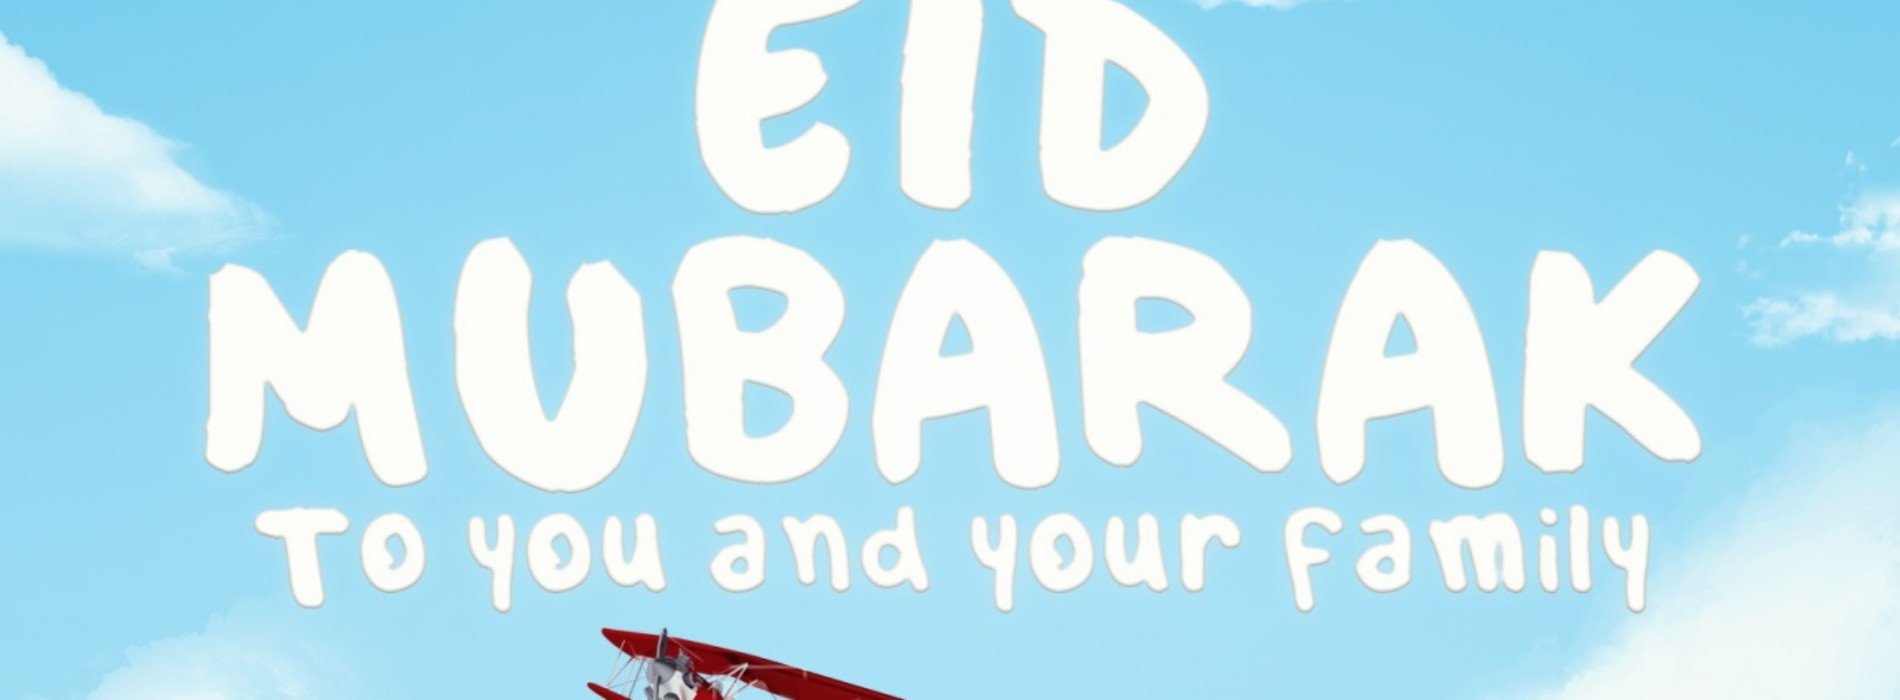 Happy Eid To You & Yours